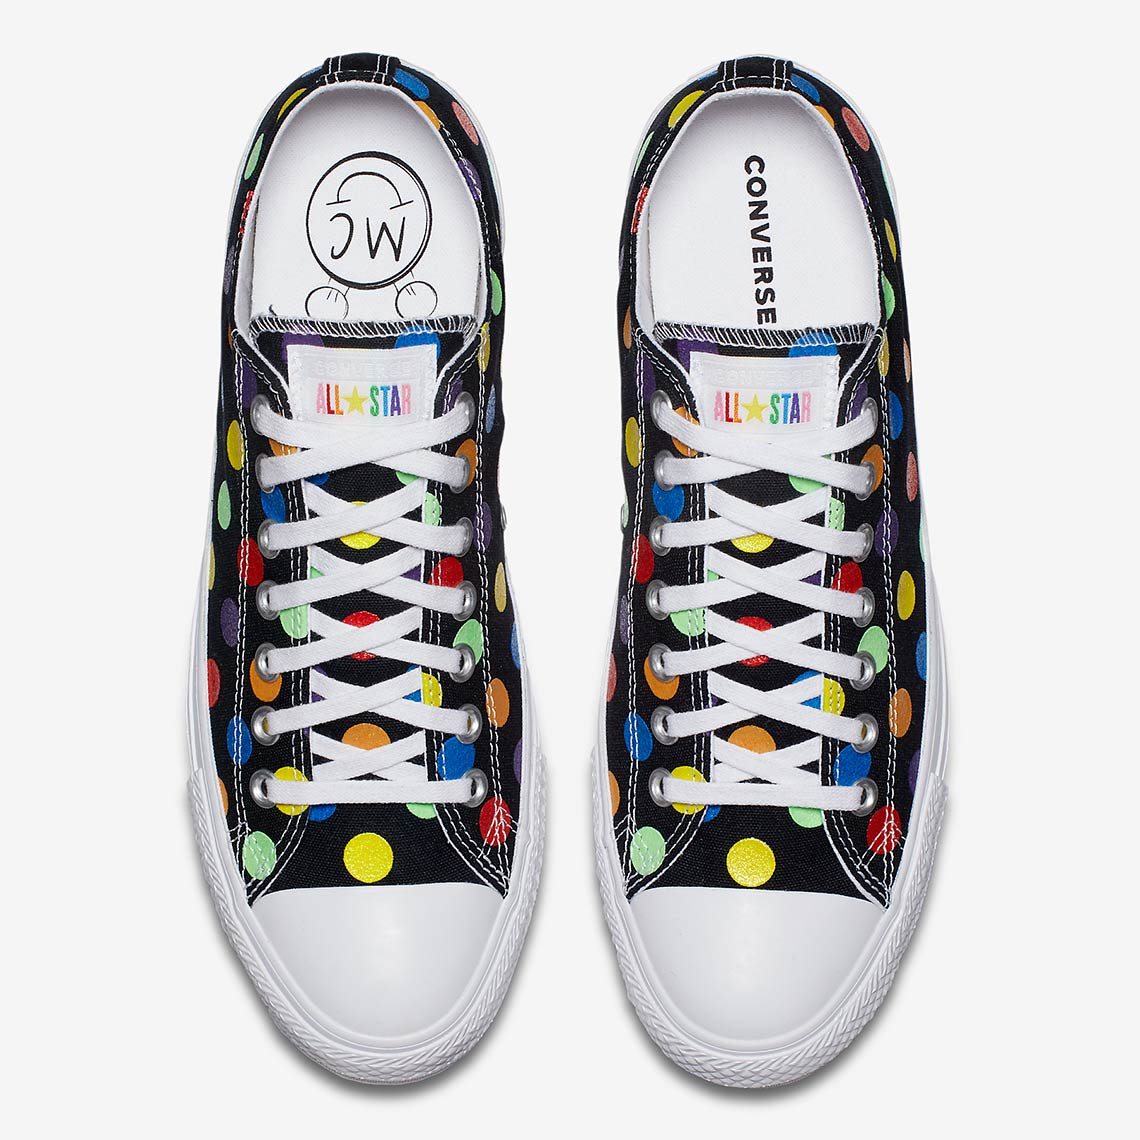 8c714160134fb4 Miley Cyrus x Converse Pride Collection Available Now